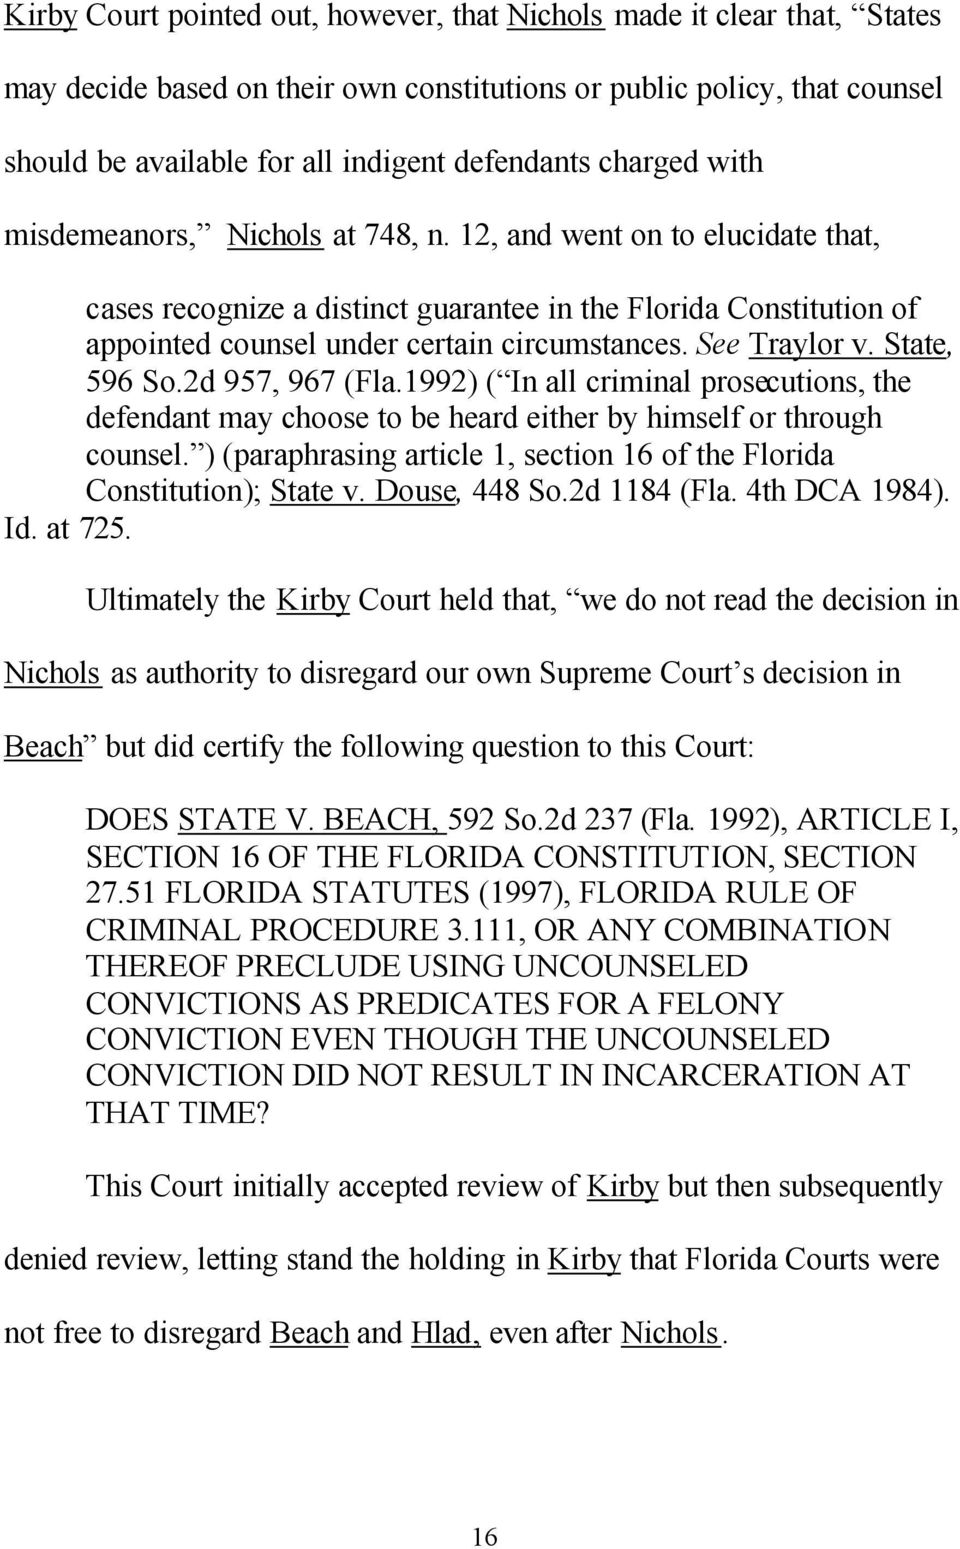 See Traylor v. State, 596 So.2d 957, 967 (Fla.1992) ( In all criminal prosecutions, the defendant may choose to be heard either by himself or through counsel.